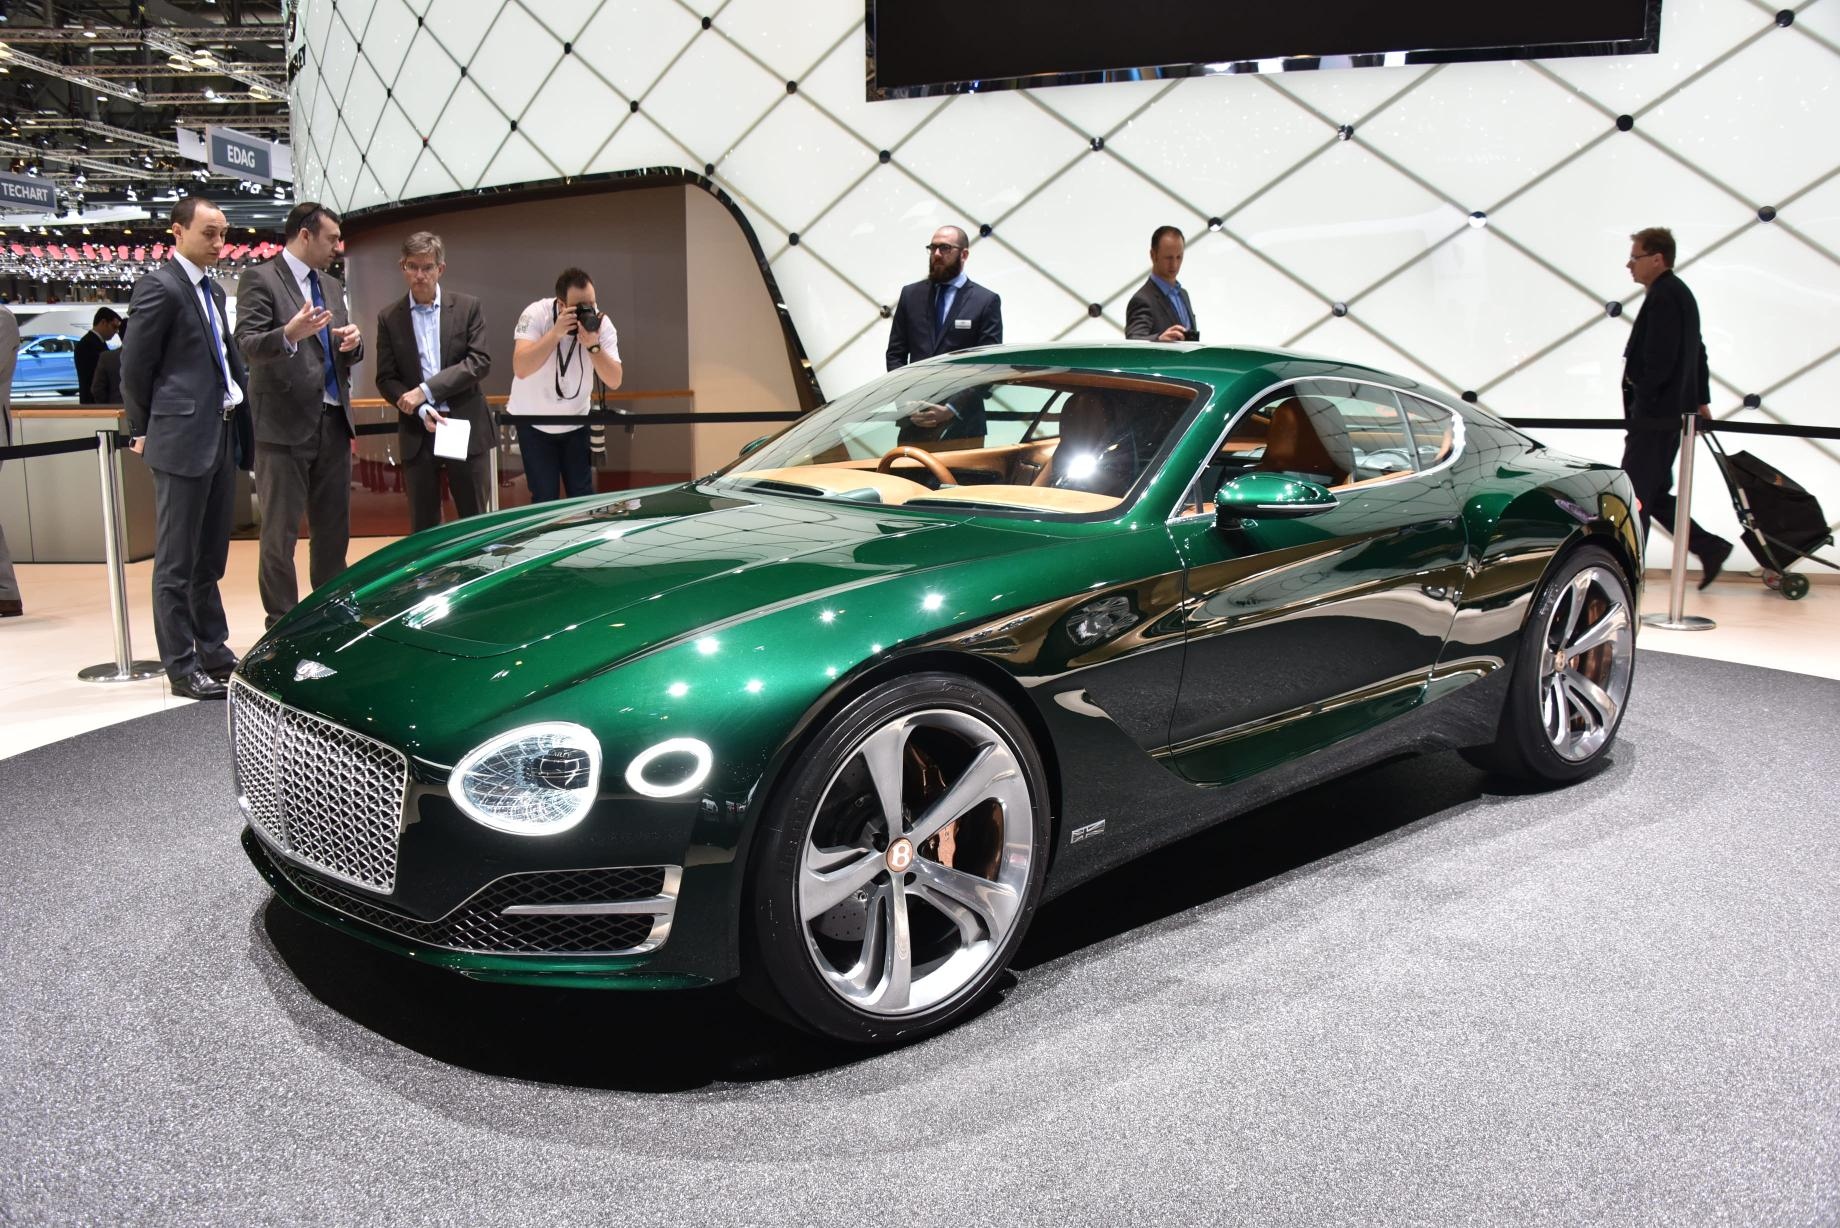 Exclusive: Bentley EXP10 Speed 6 Confirmed for Production